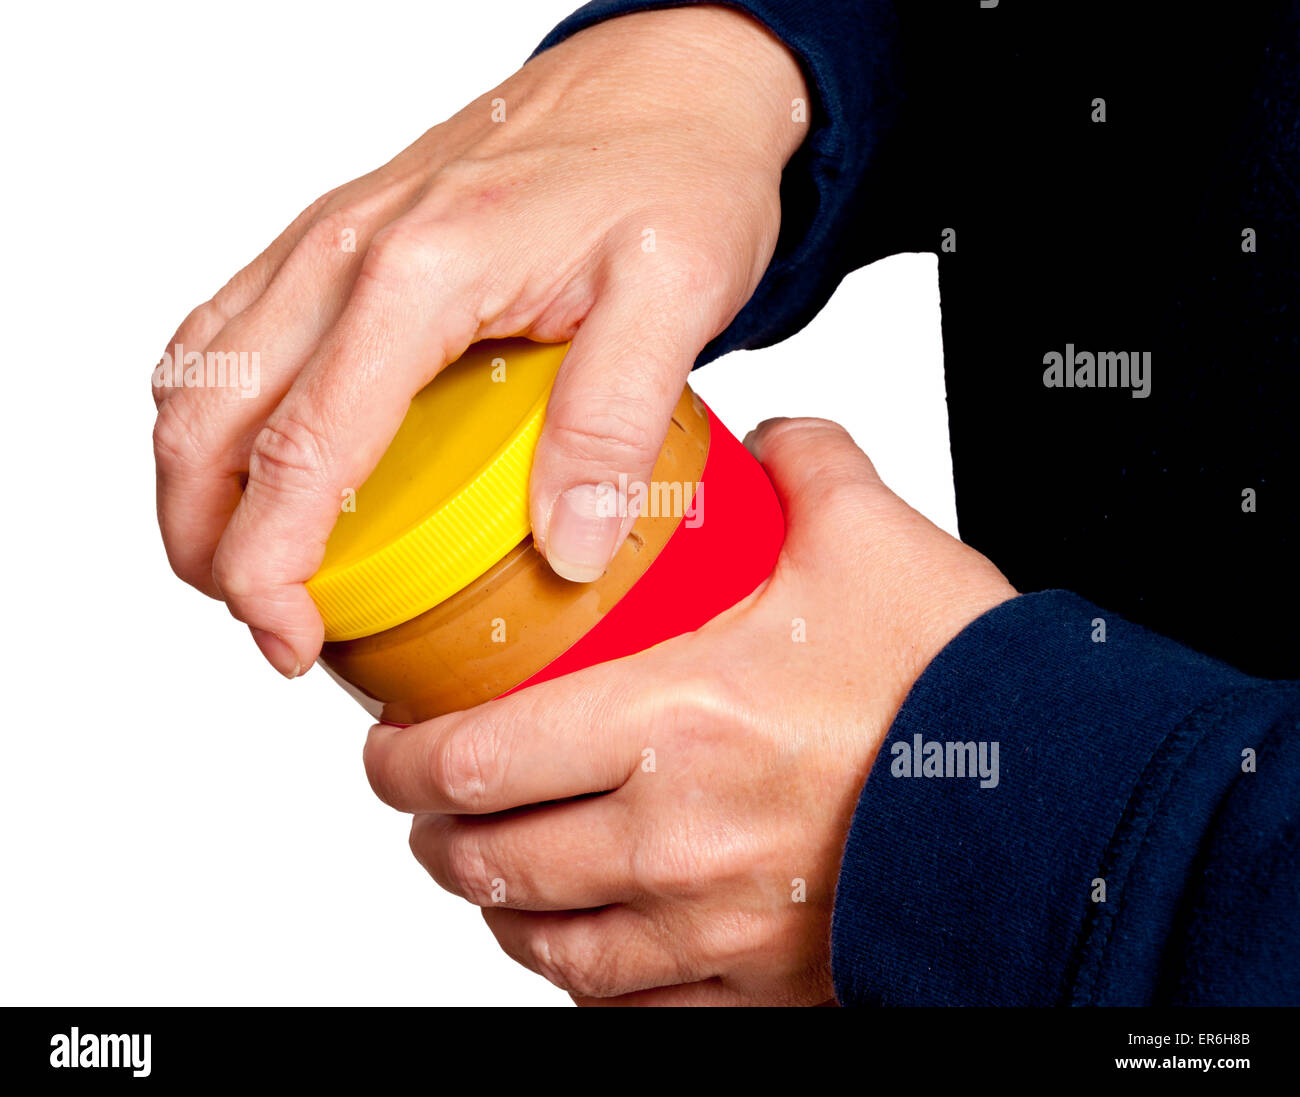 Trying to open a jar with arthritis pain. Horizontal shot on white background - Stock Image